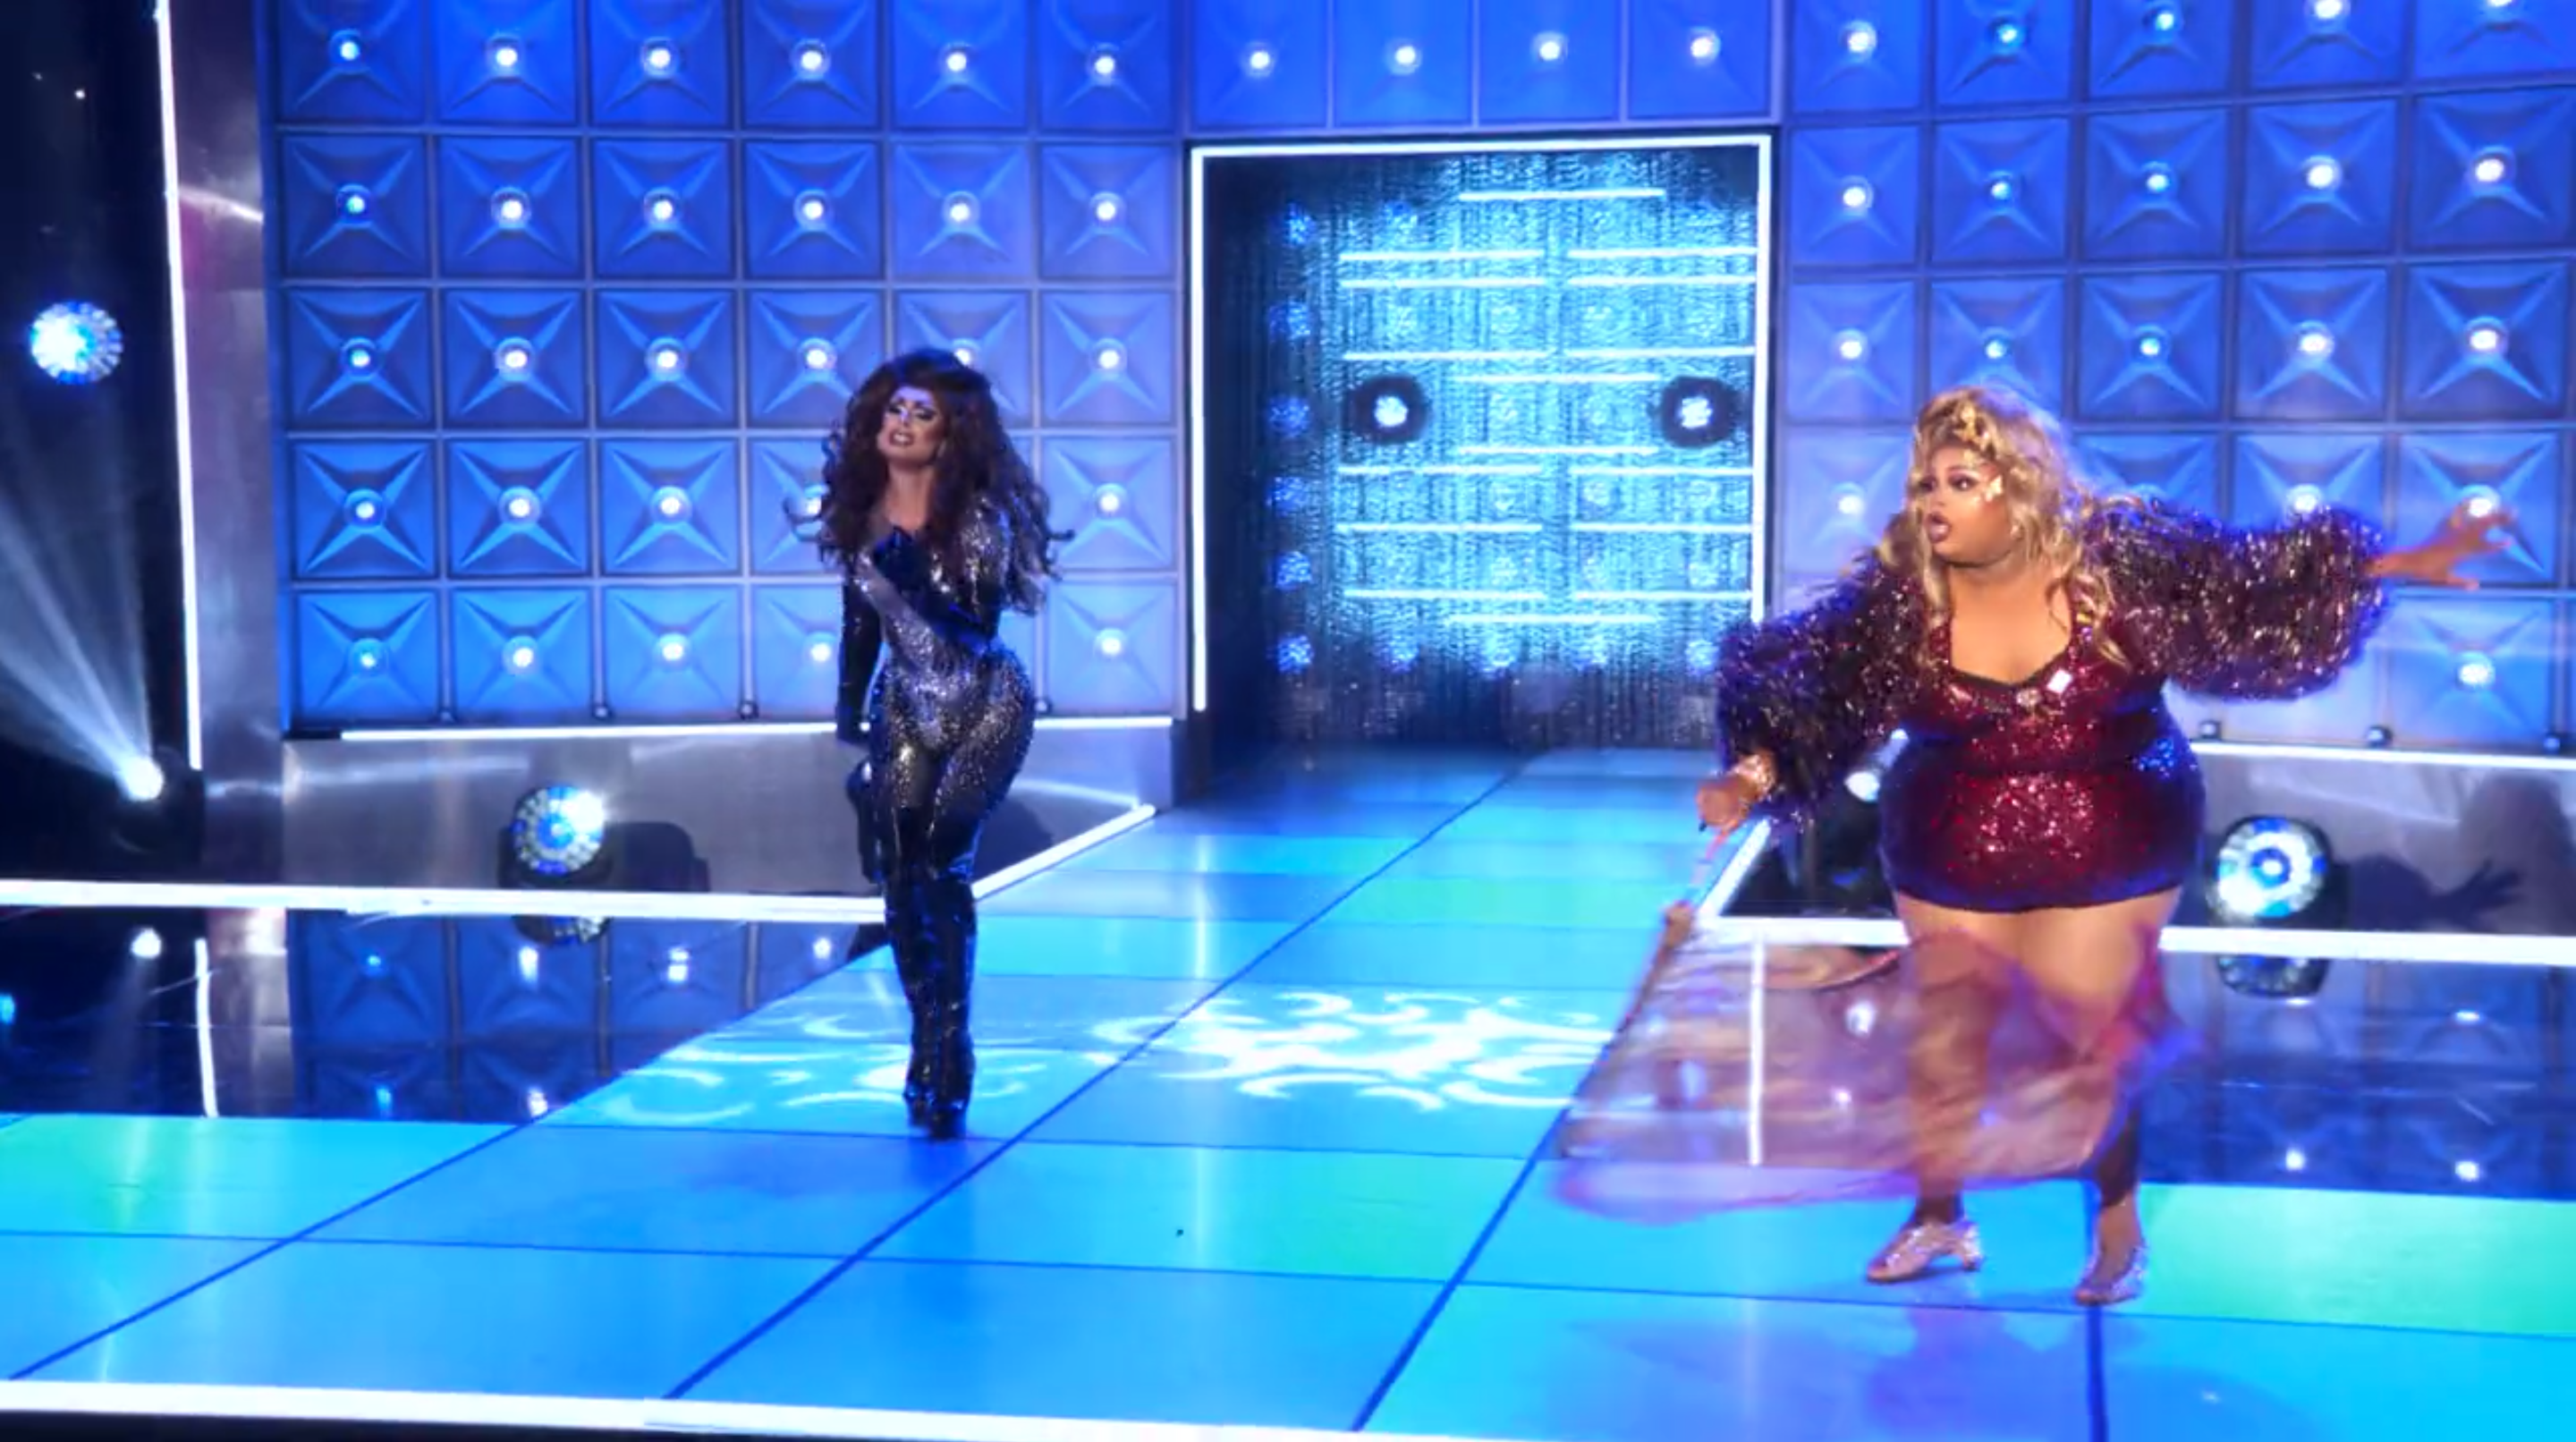 Silky and Scarlet doing battle and looking fierce.